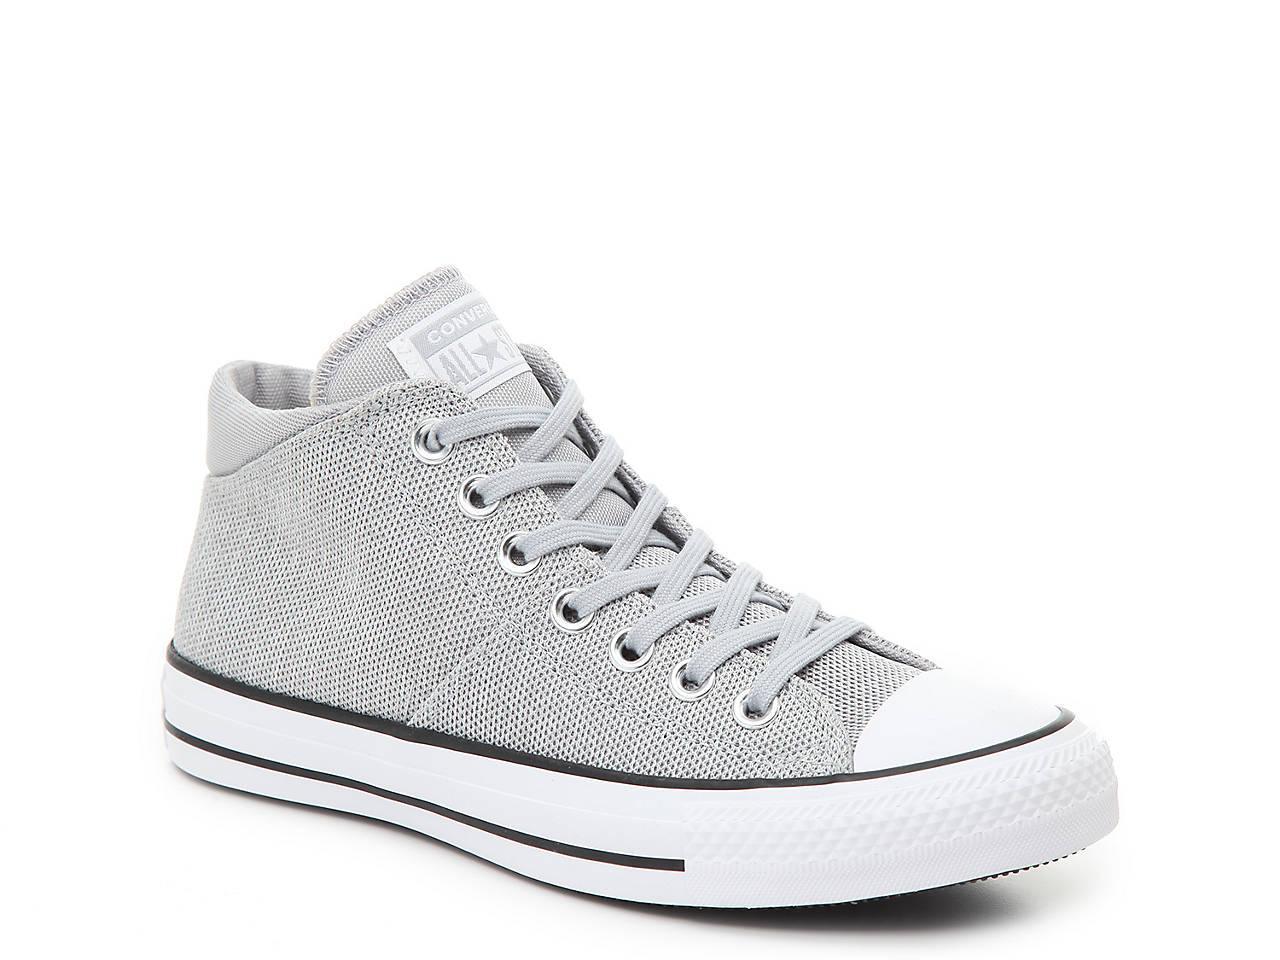 4cfa9717f9345e Converse Chuck Taylor All Star Madison Mid-Top Sneaker - Women s ...